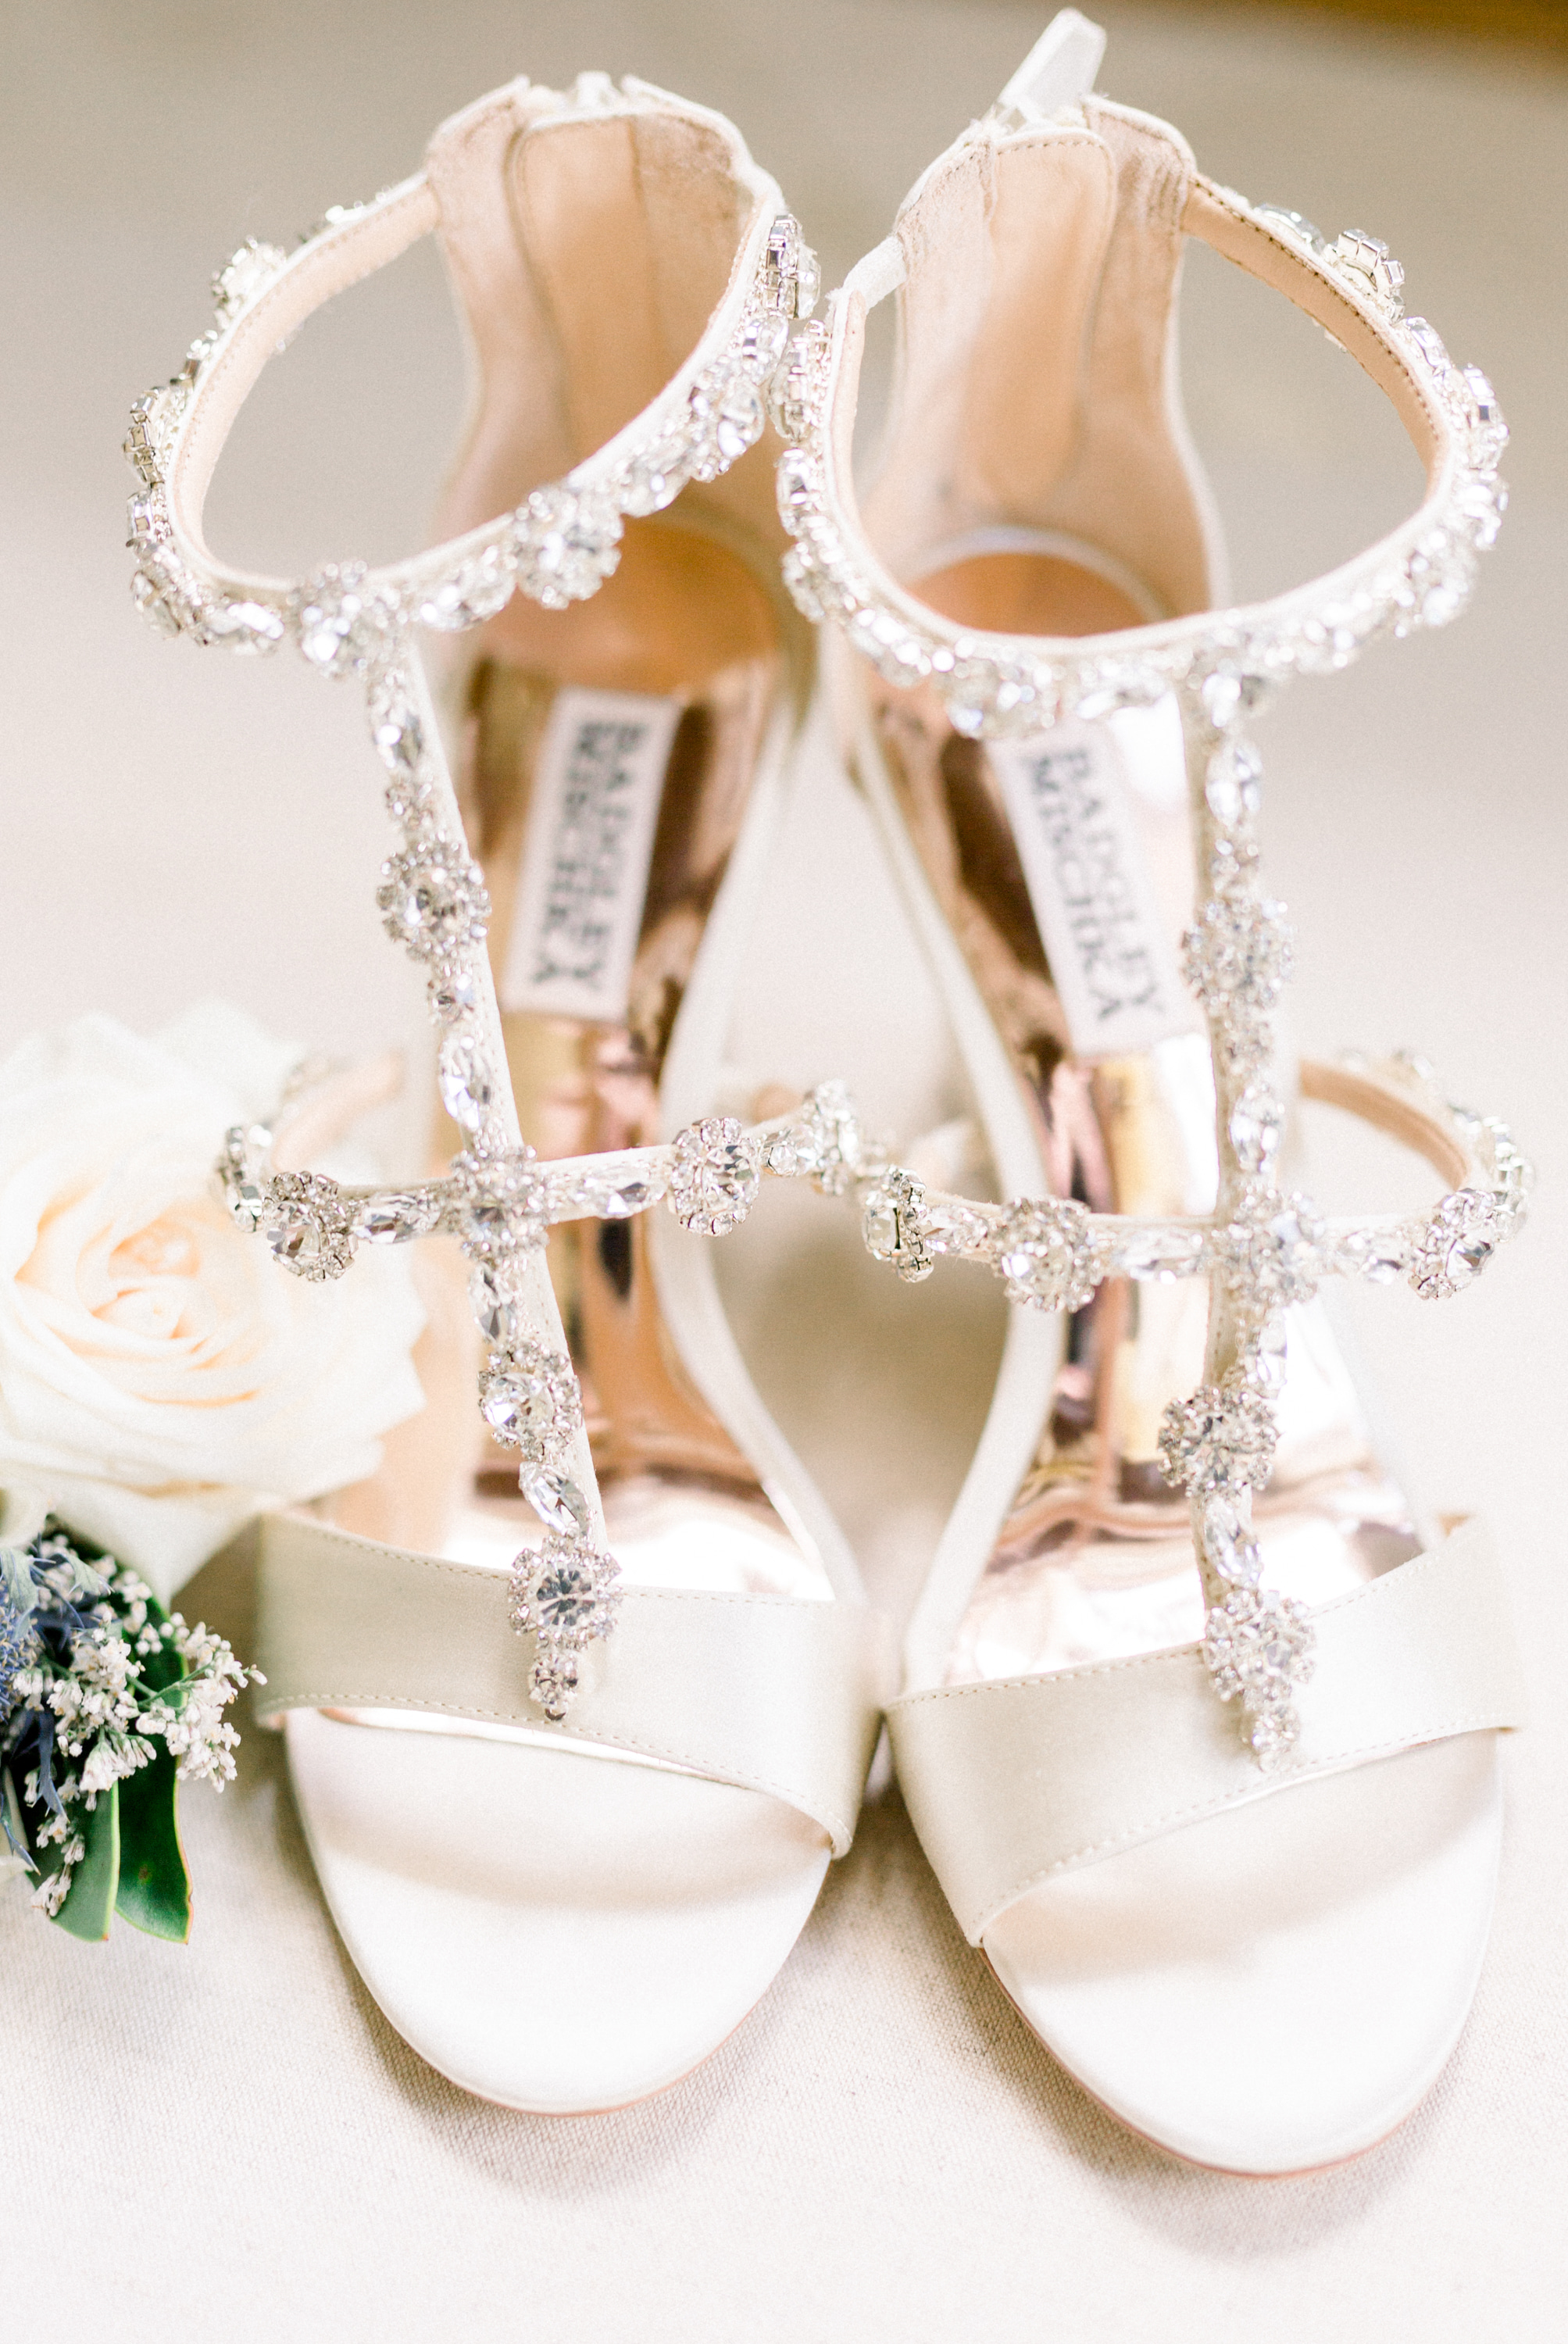 Bride's Badgley Mischka shoes for Pittsburgh wedding planned by Exhale Events. Find more wedding inspiration at exhale-events.com!